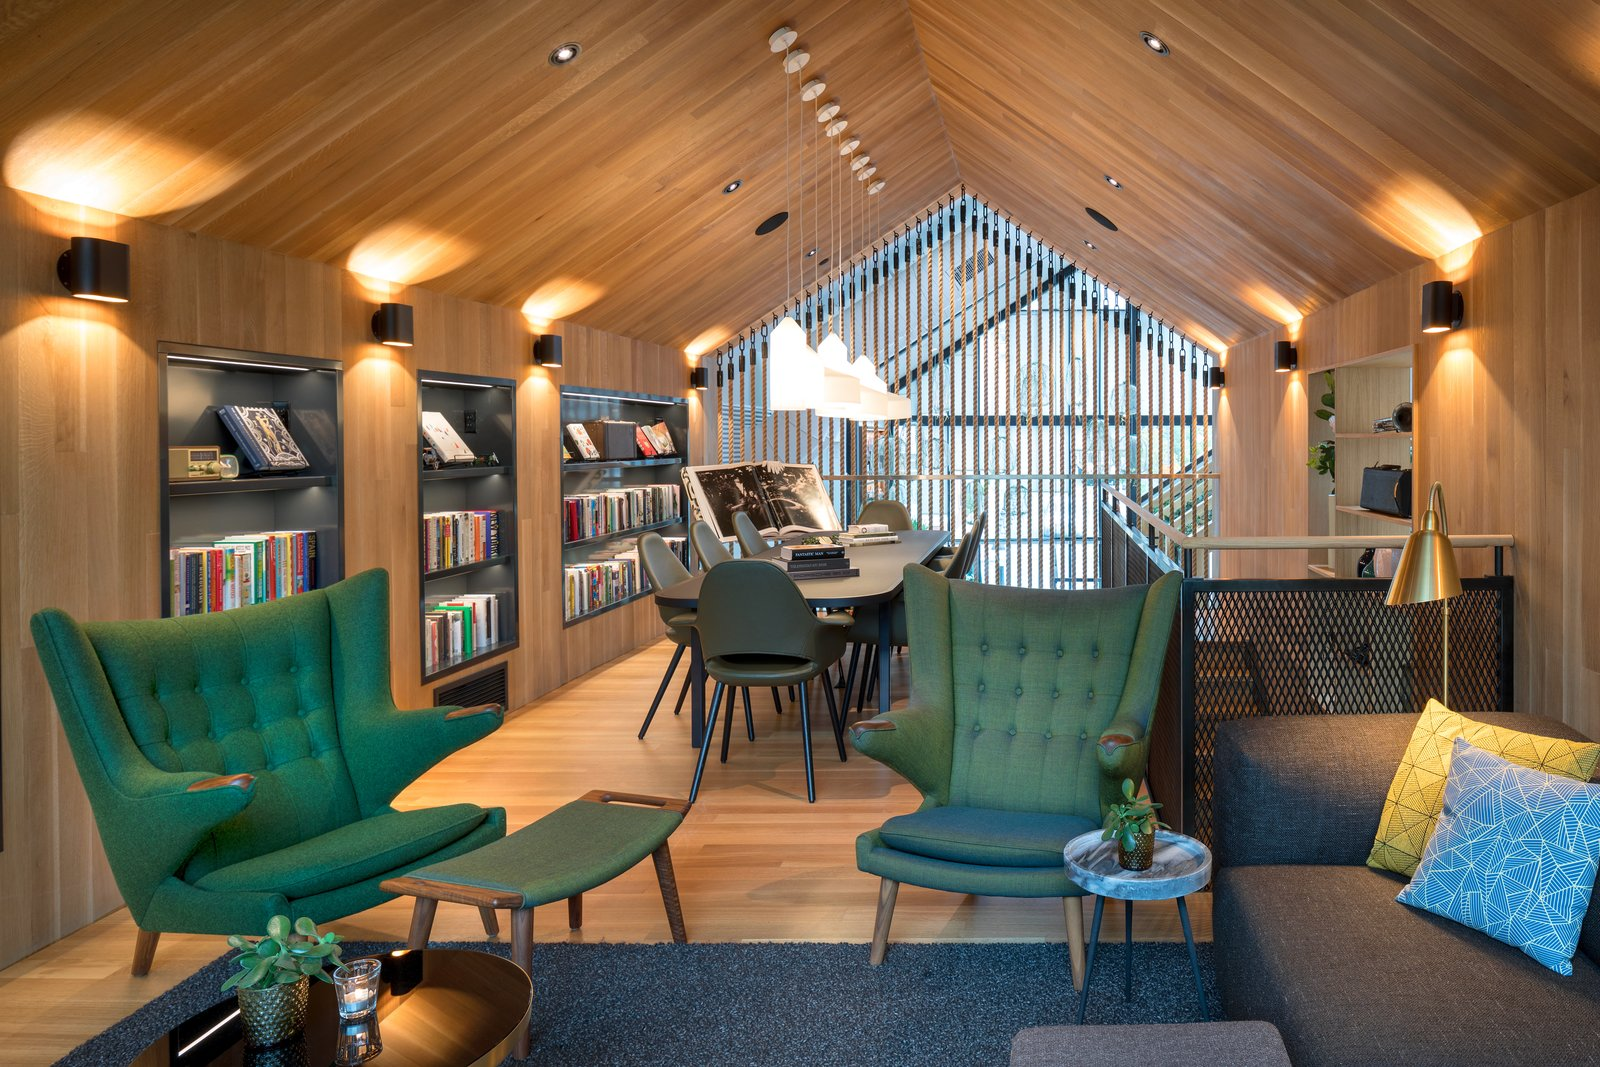 Office, Study Room Type, Library Room Type, Chair, Bookcase, Rug Floor, Shelves, and Light Hardwood Floor  Photo 5 of 7 in Boutique Coffee Roaster Coperaco's First Cafe Holds a Modern Tree House